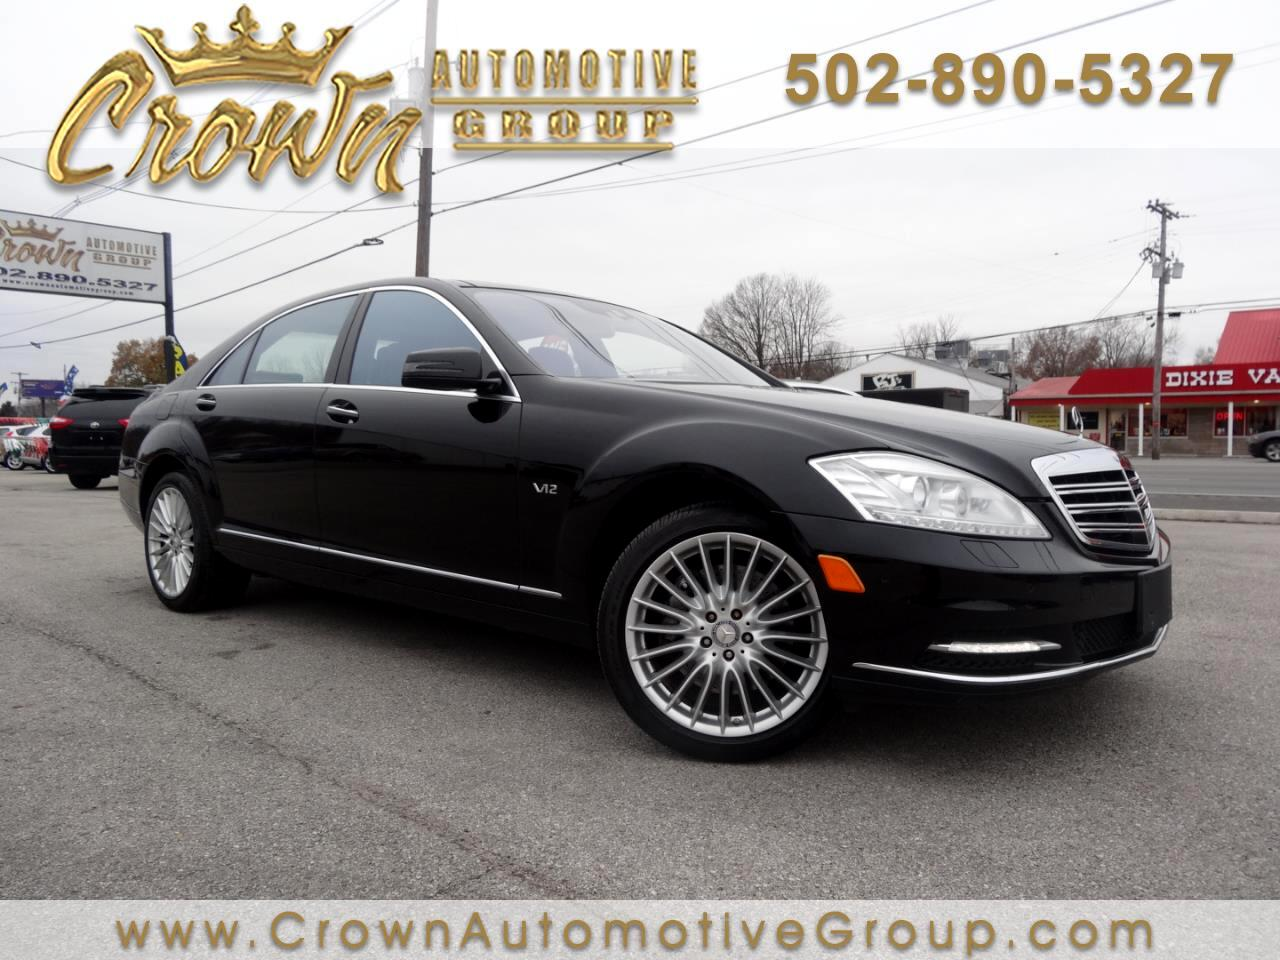 2010 Mercedes-Benz S-Class 4dr Sdn S 600 RWD